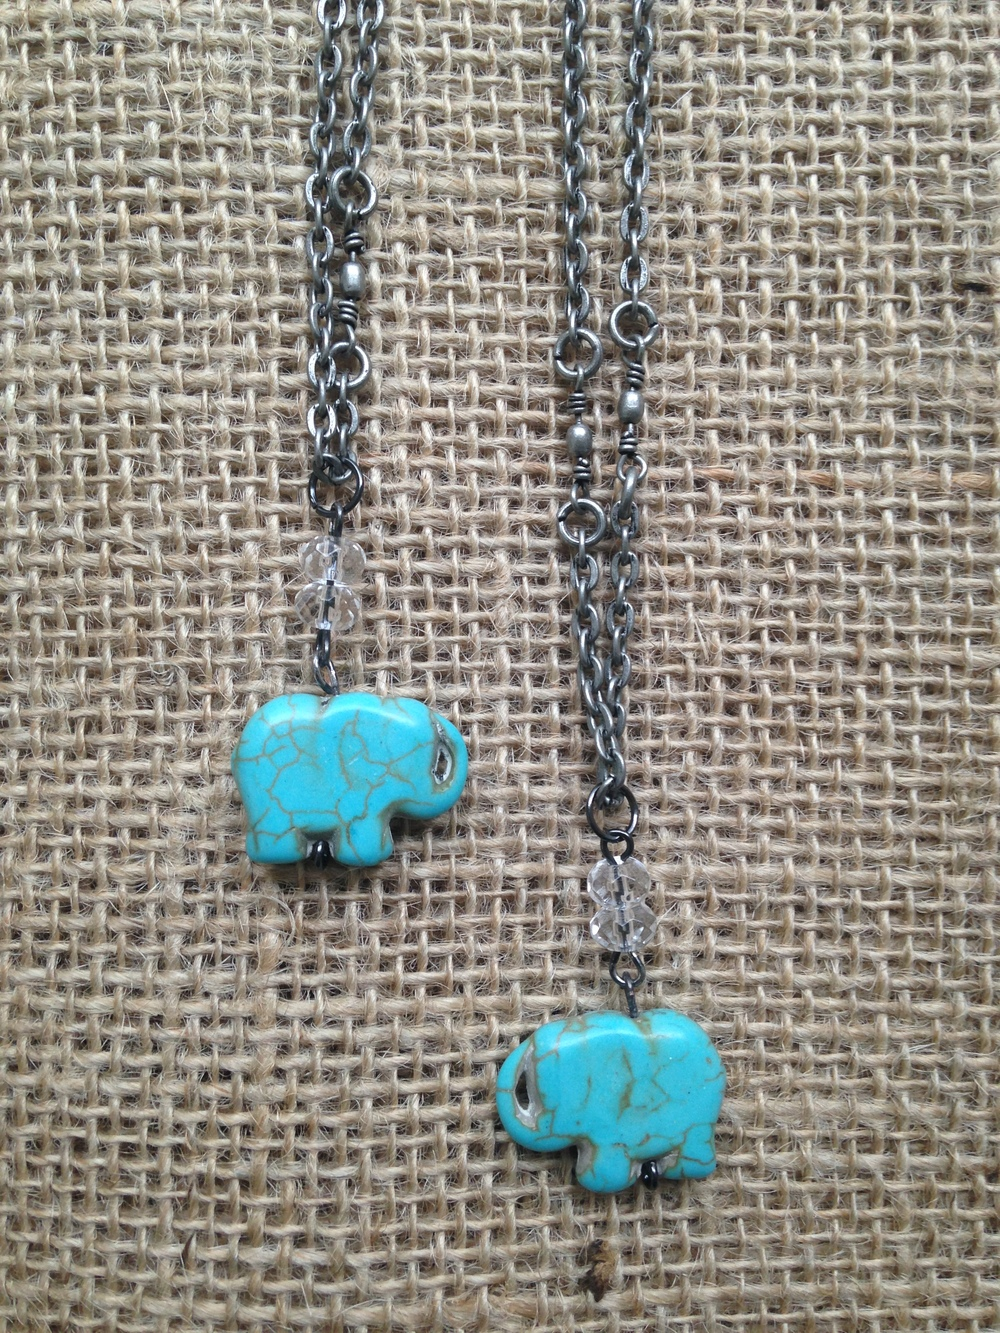 Custom order of two elephant necklaces to give to their daughters for Christmas.